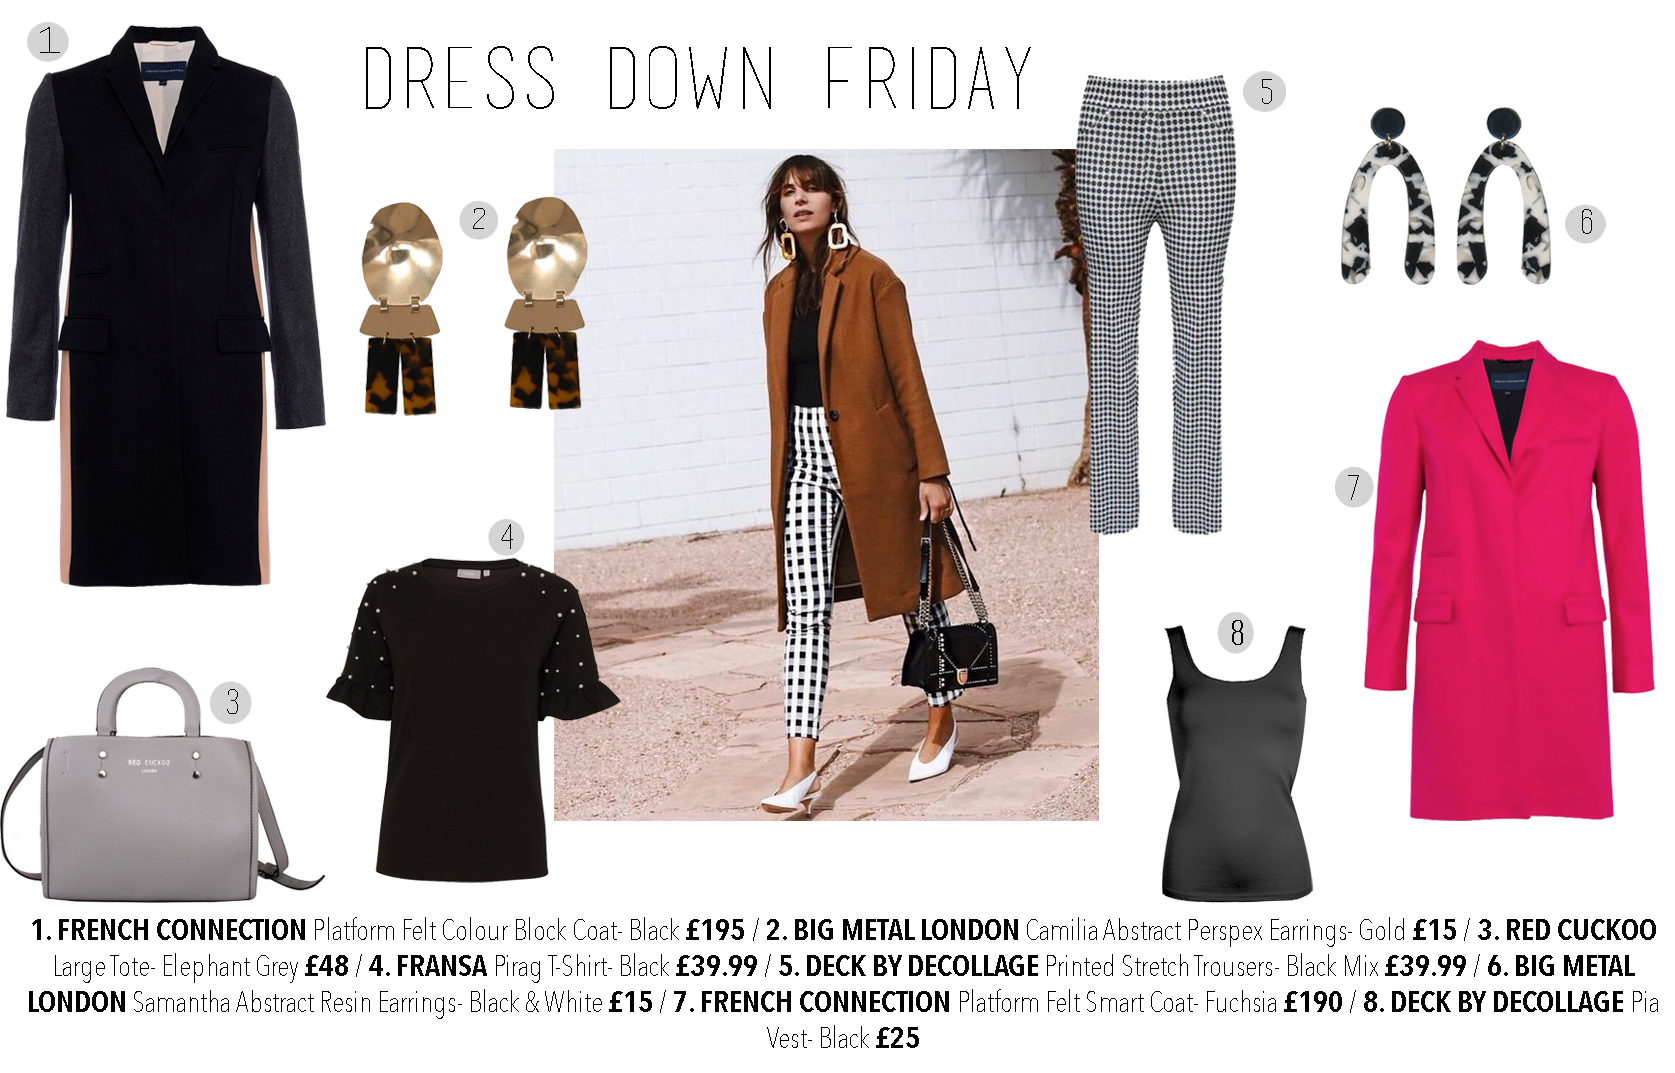 Dress down Friday